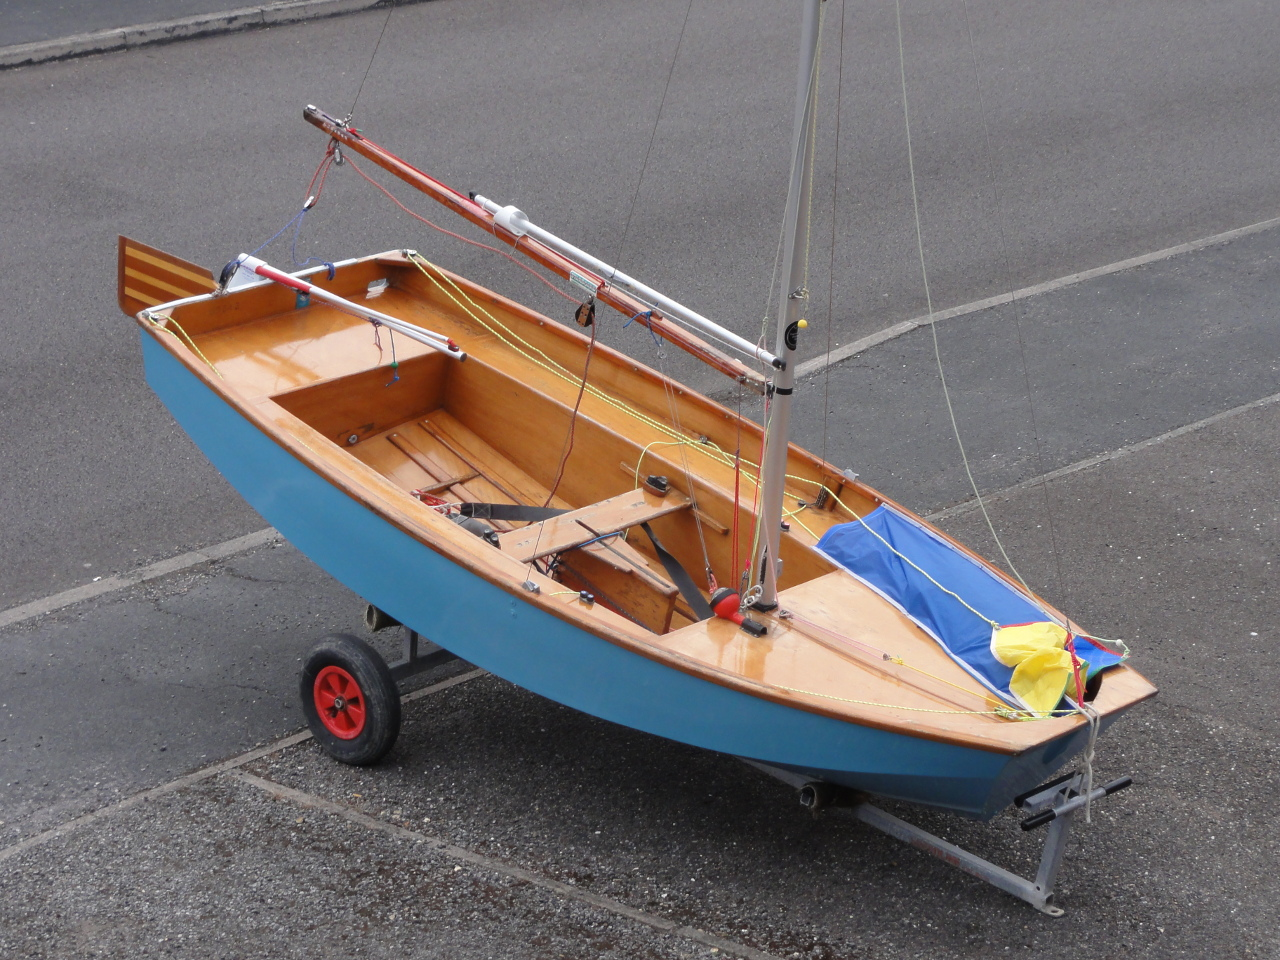 A Mirror dinghy with mast up on a driveway